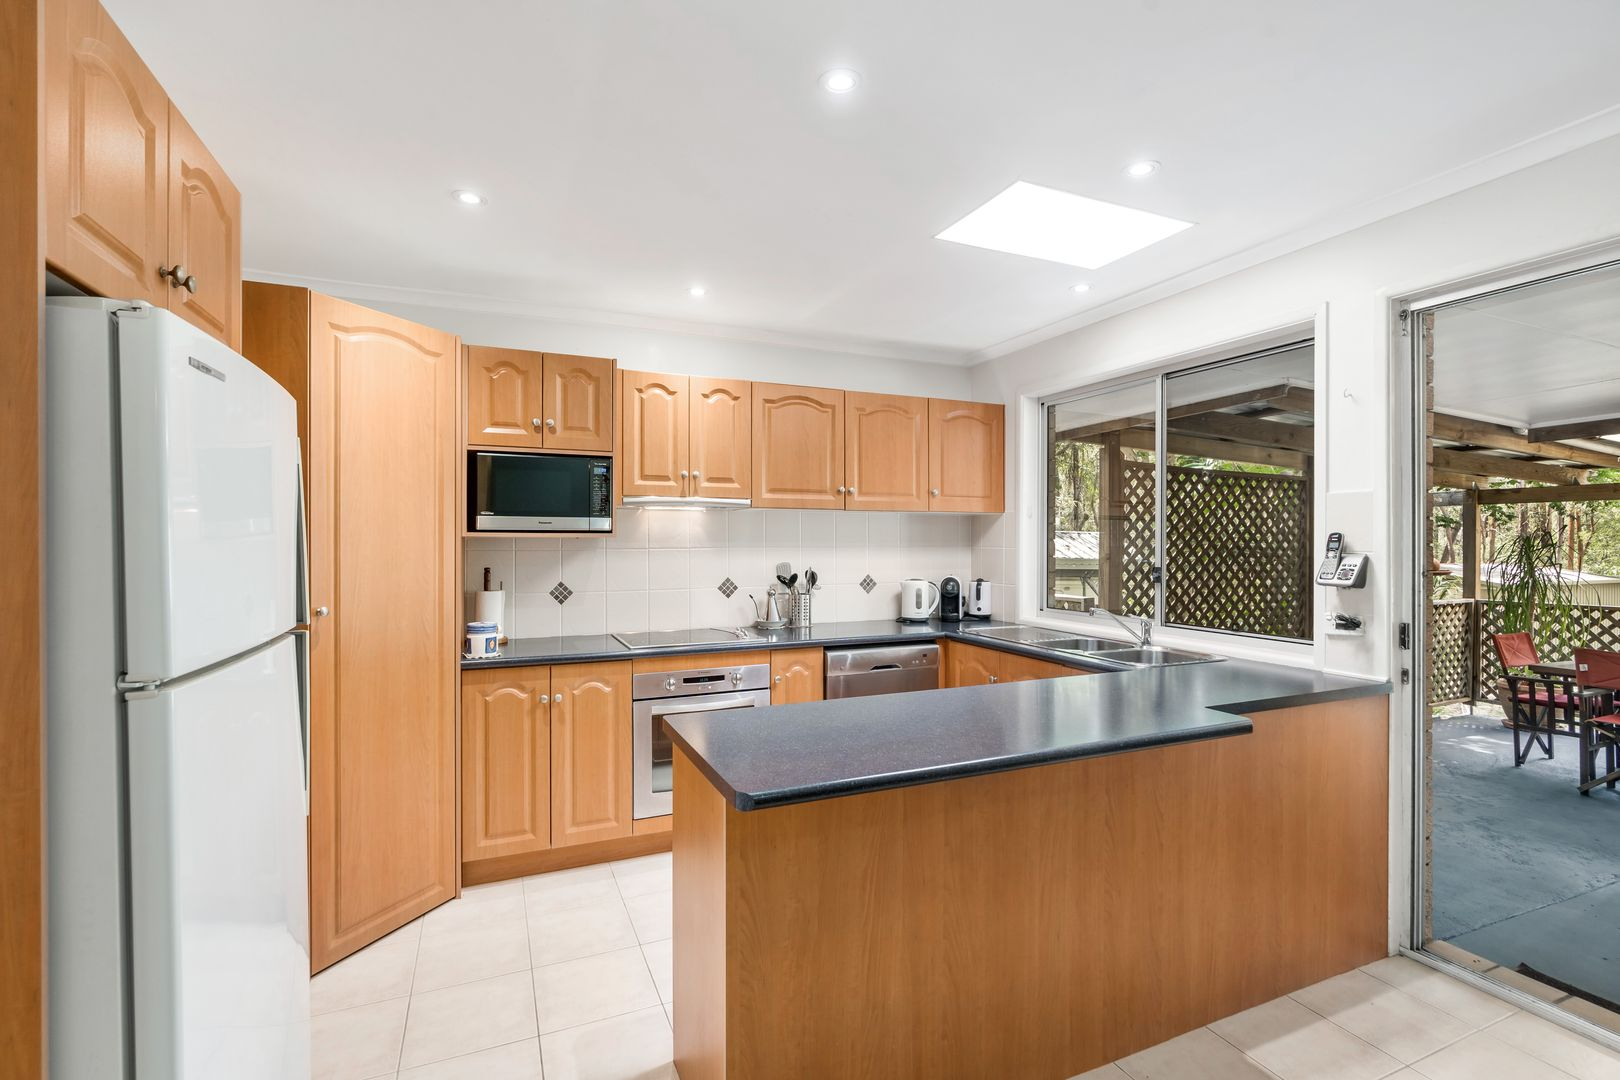 57-59 Campbell Road, Sheldon QLD 4157, Image 2